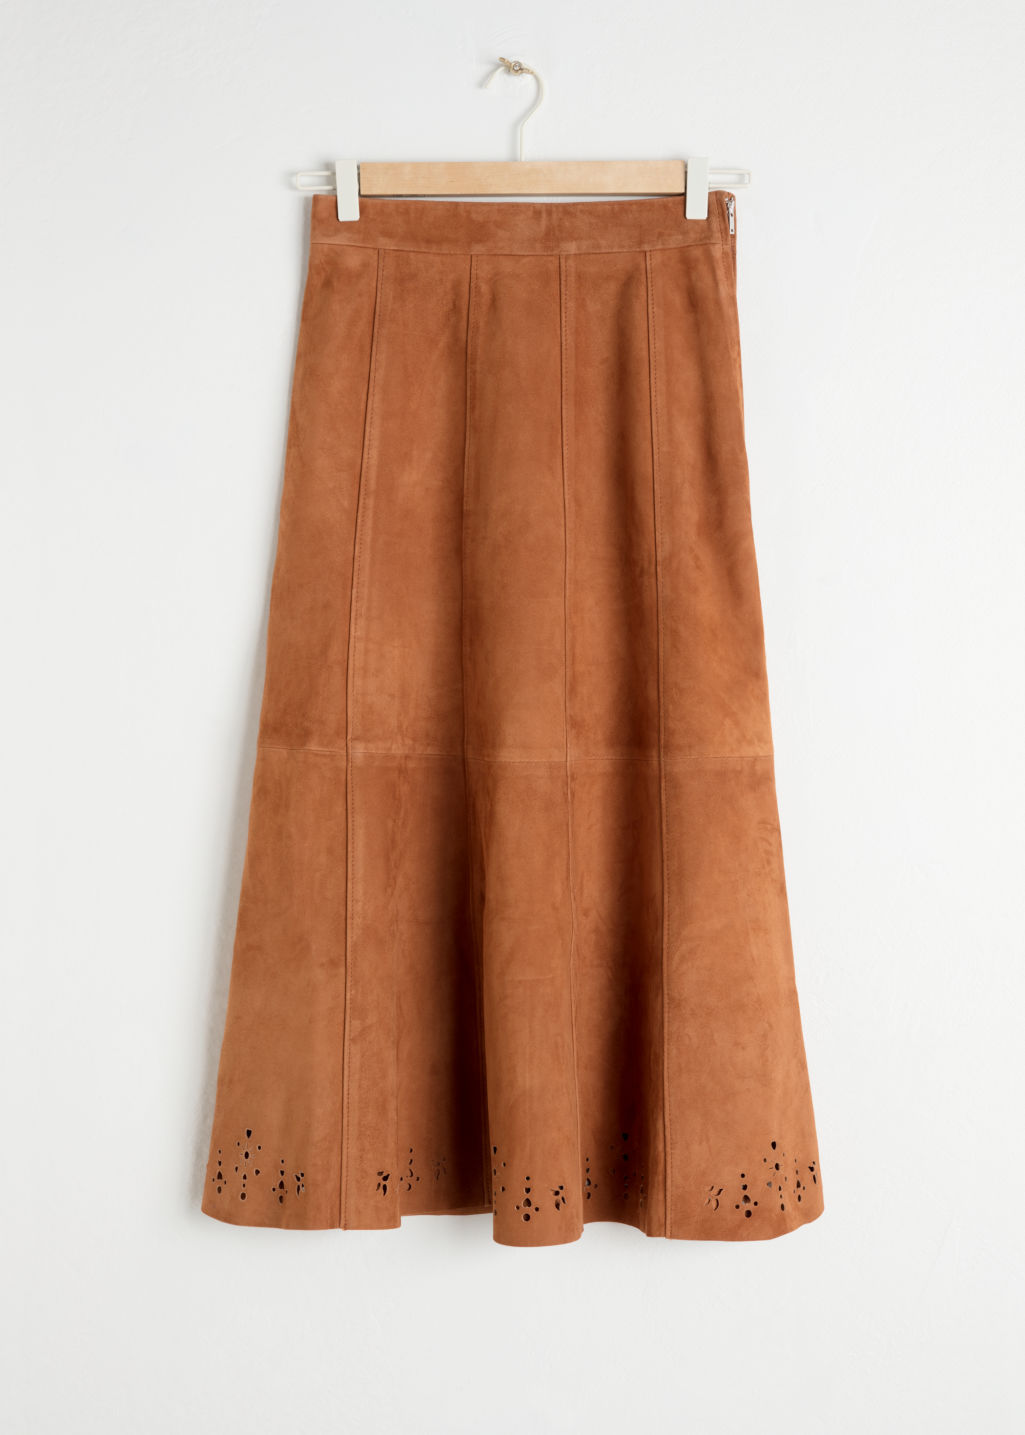 cd43a70cd Pleated Suede Midi Skirt - Camel - Midi skirts - & Other Stories